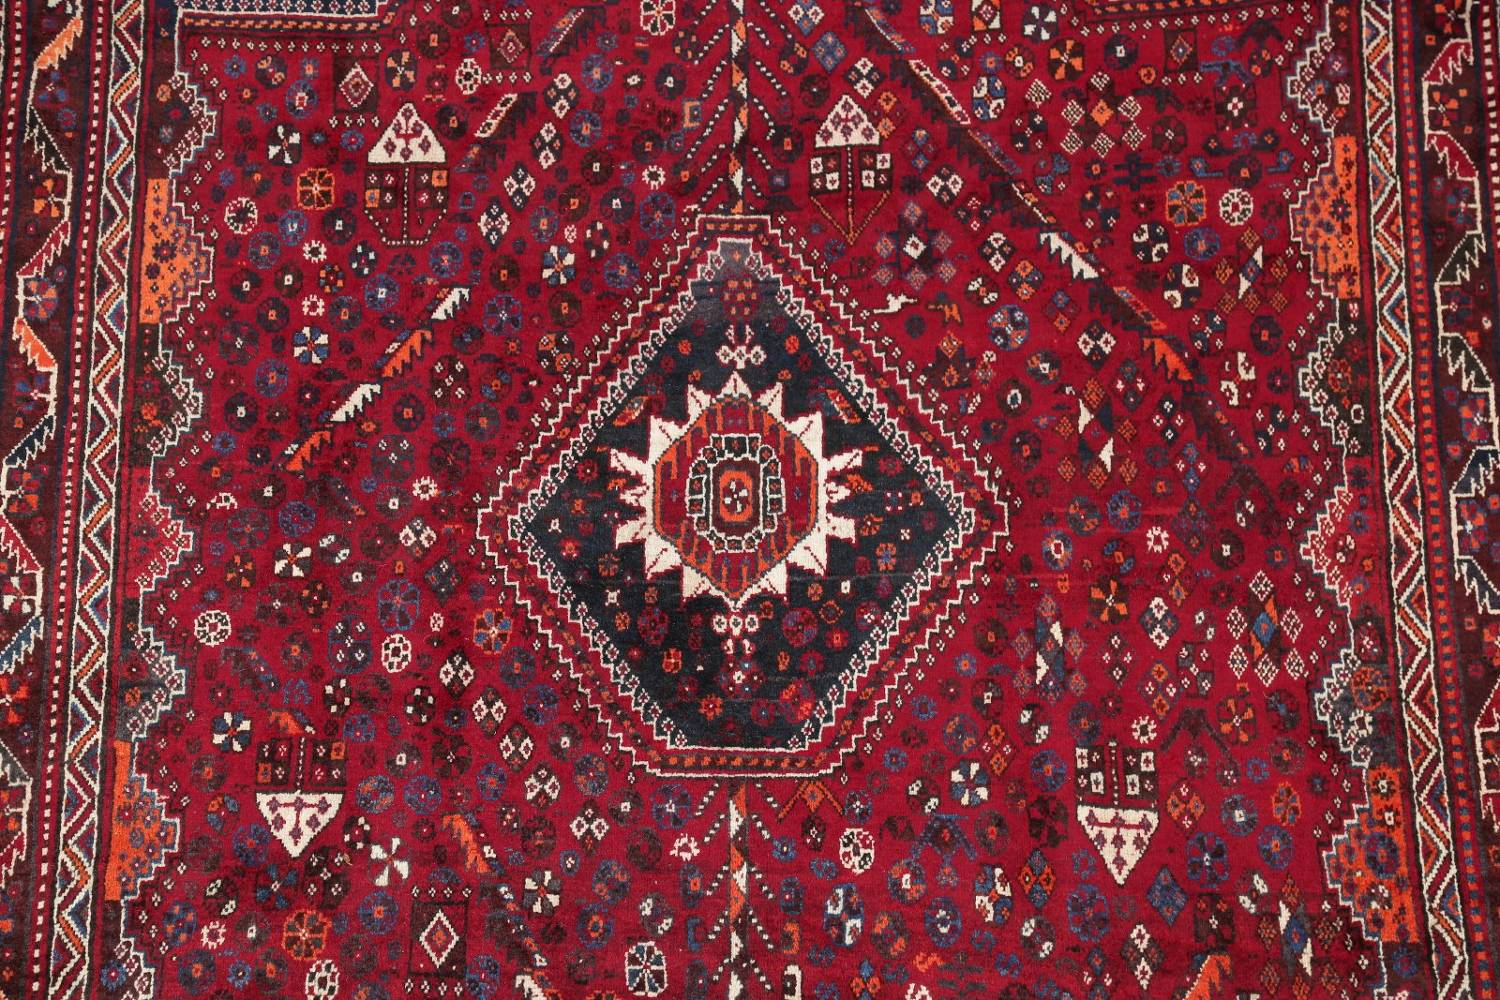 Antique Red Tribal Geometric Qashqai Persian Hand-Knotted 5x8 Wool Area Rug image 4